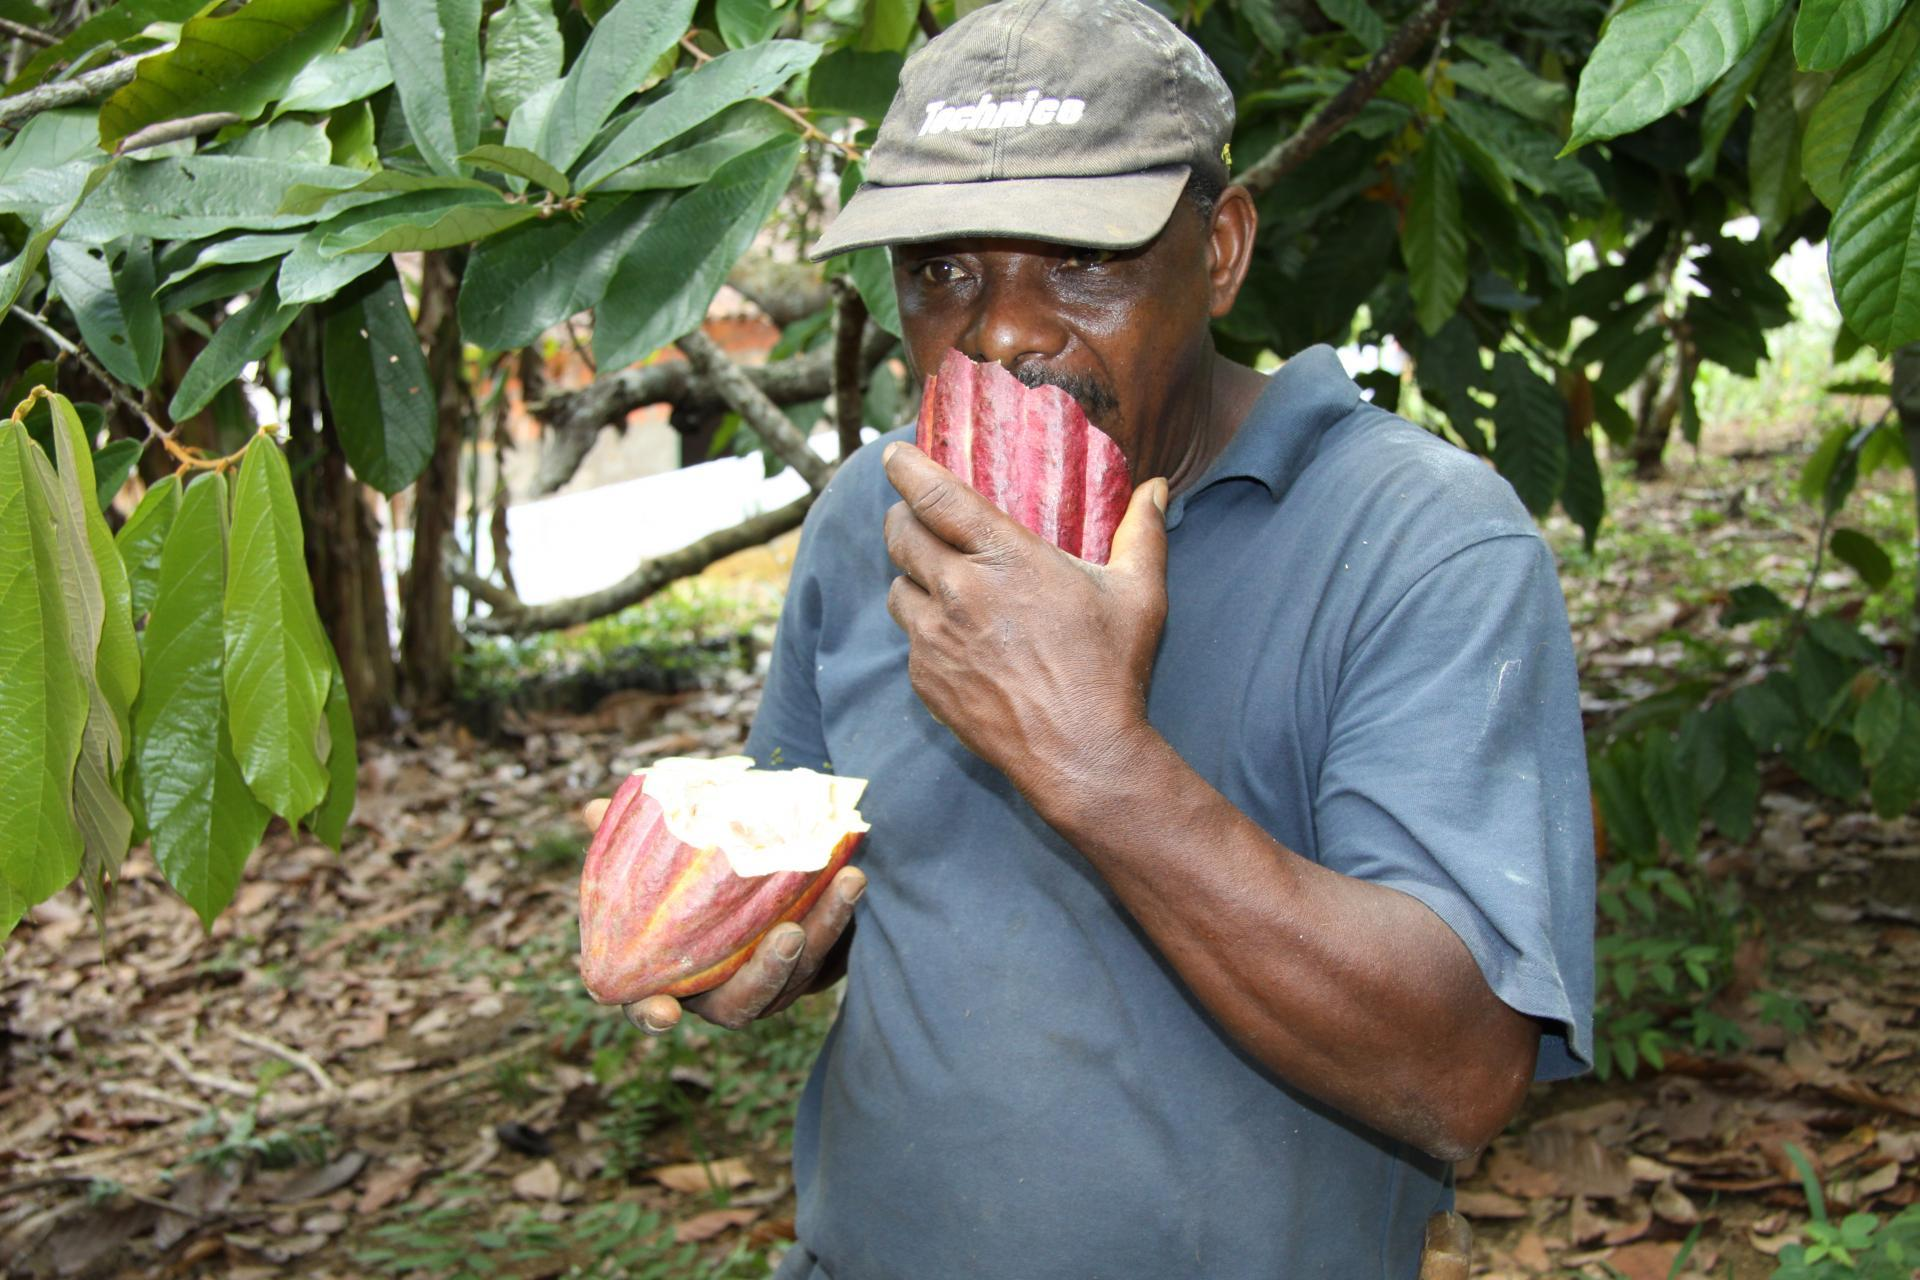 A trip to a Cocoa Farm in Bahia, per our insider advice.